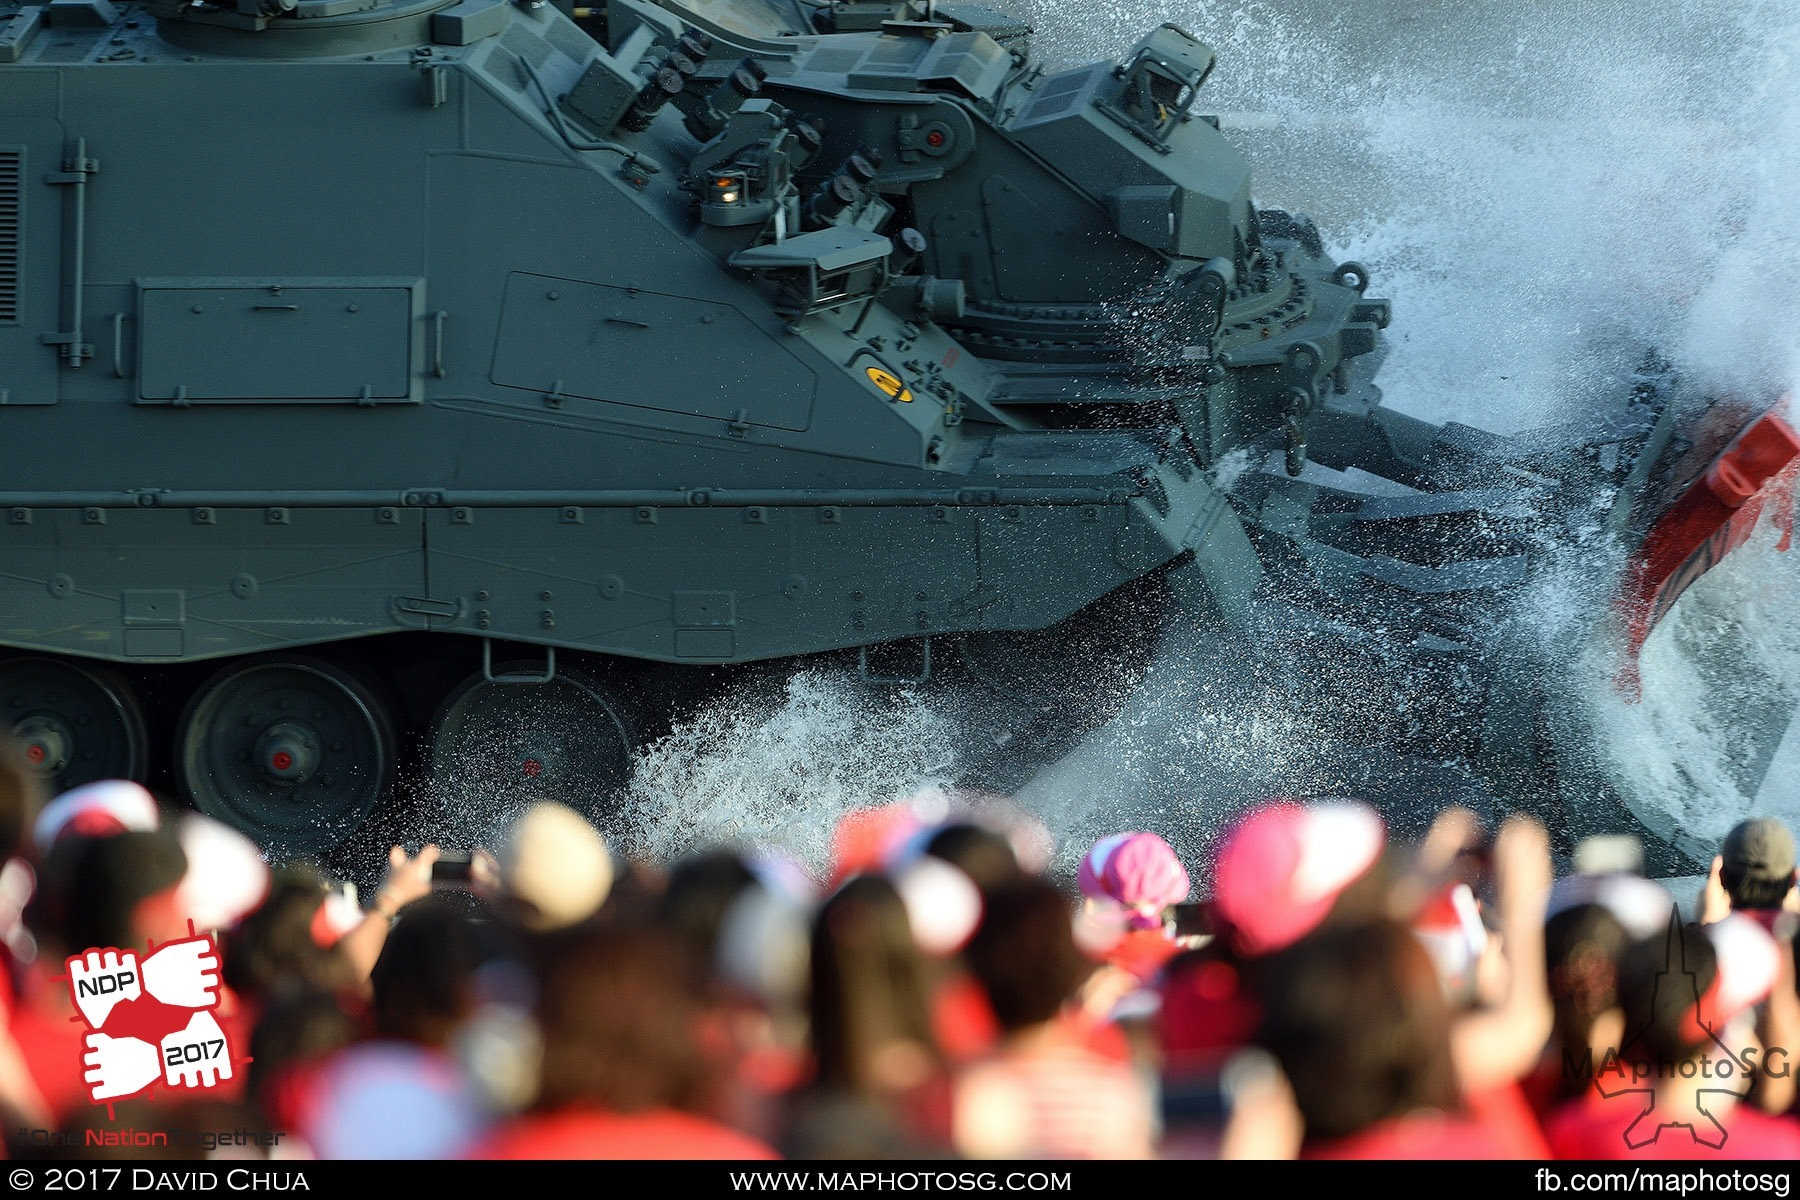 15. Leopard 2 Armoured Engineer Vehicle crashes a water barrier in front of the spectators as part of the Dynamic Defence Display show.